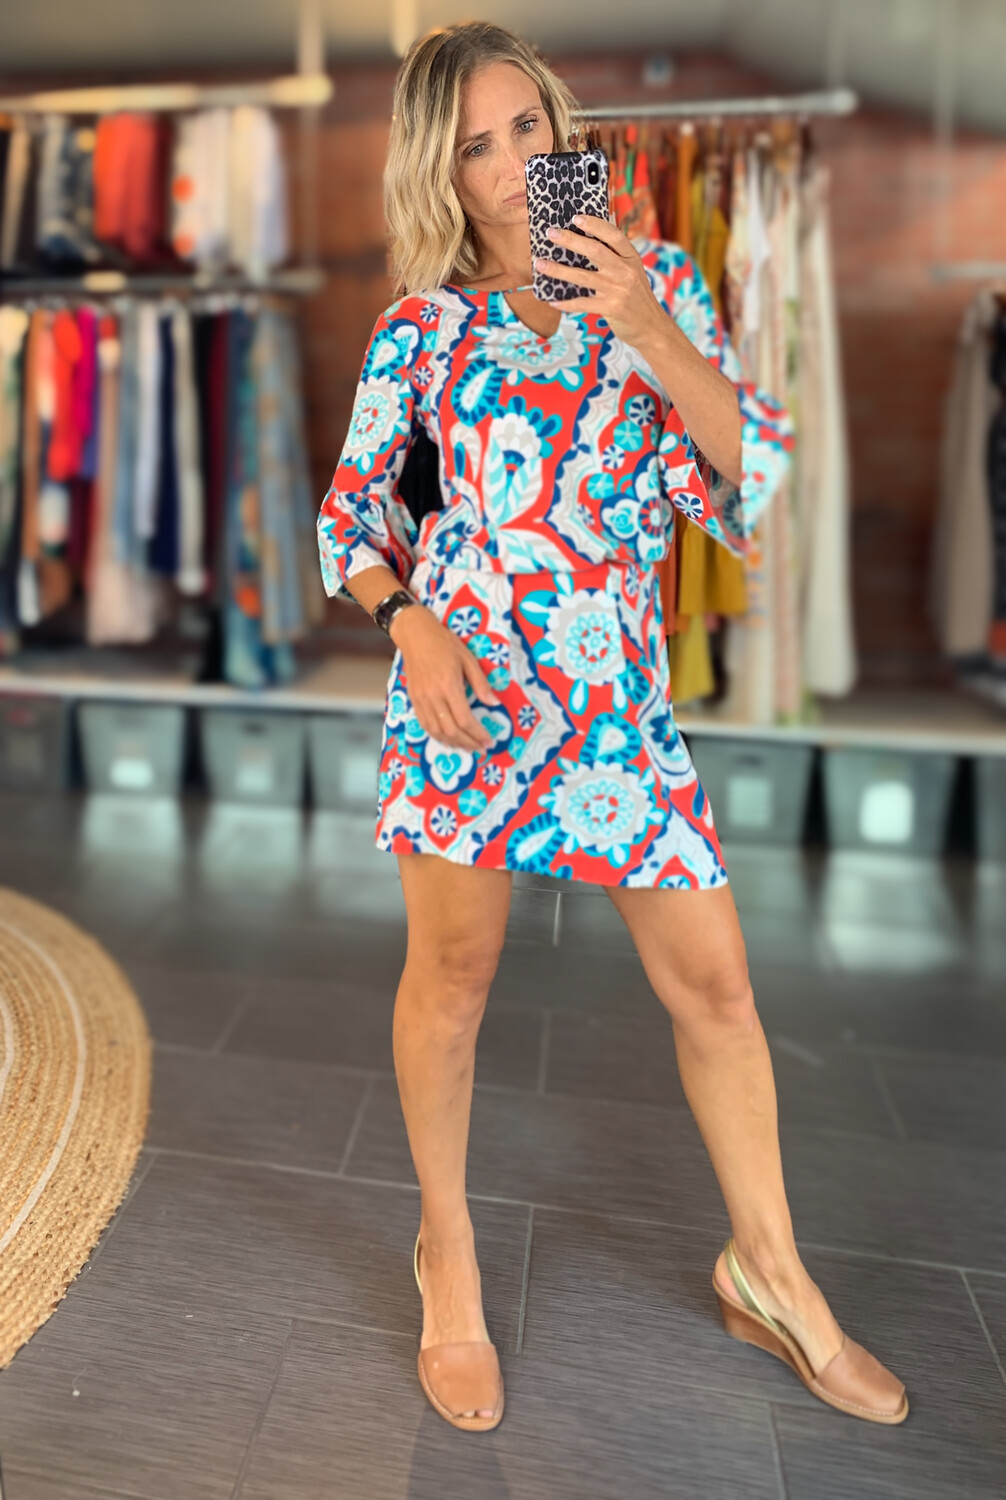 Loose Fitted Patterned Summer Dress